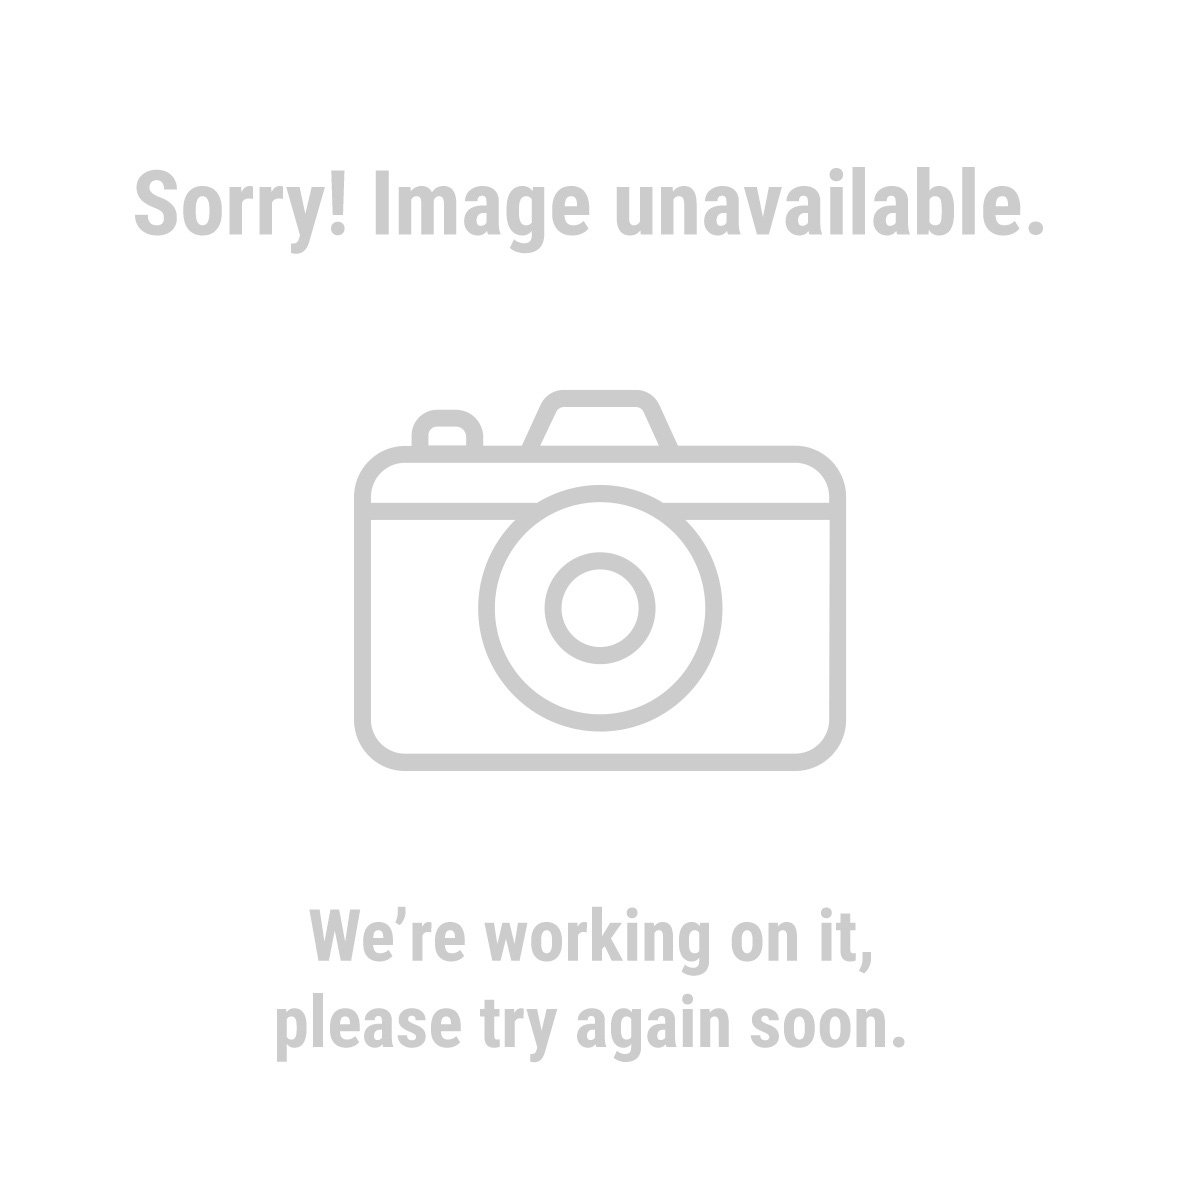 Vanguard 63147 125 Volt, 15 Amp Female Plug Connector